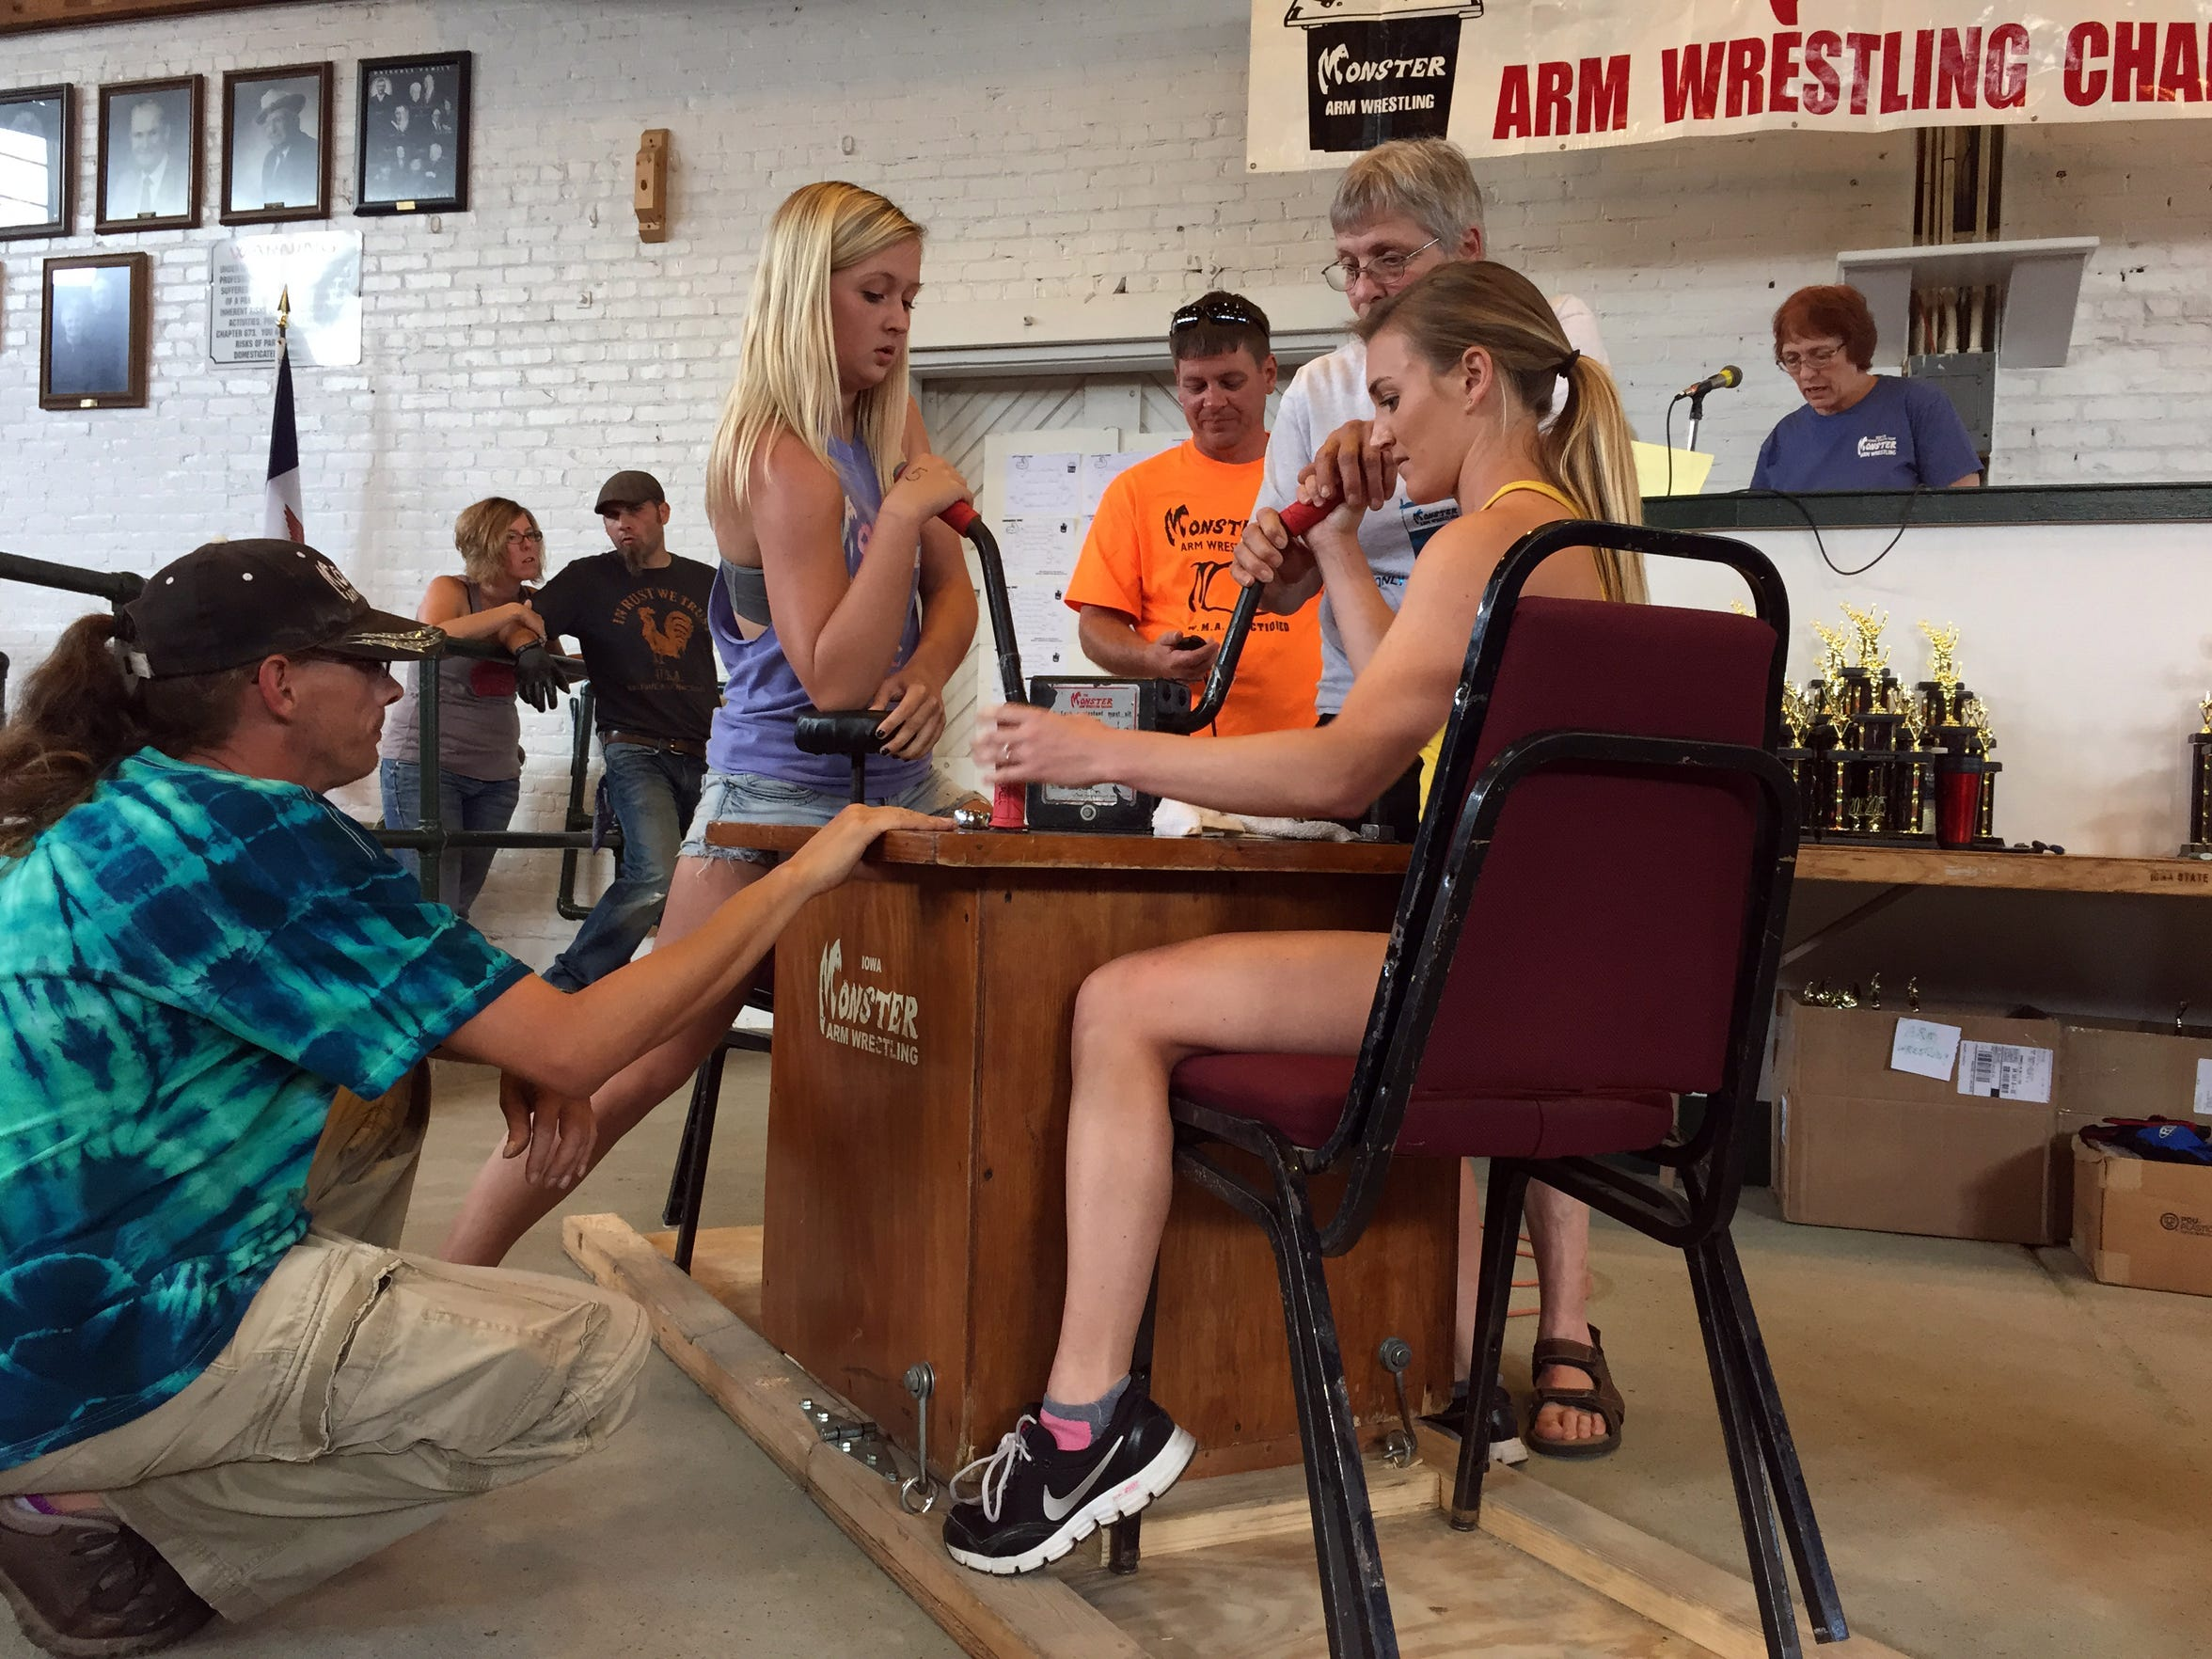 Laurisa Stringer, 20, standing, prepares for a match at the Monster Arm Wrestling Championships on Sunday, Aug. 16, 2015 at the Iowa State Fair.